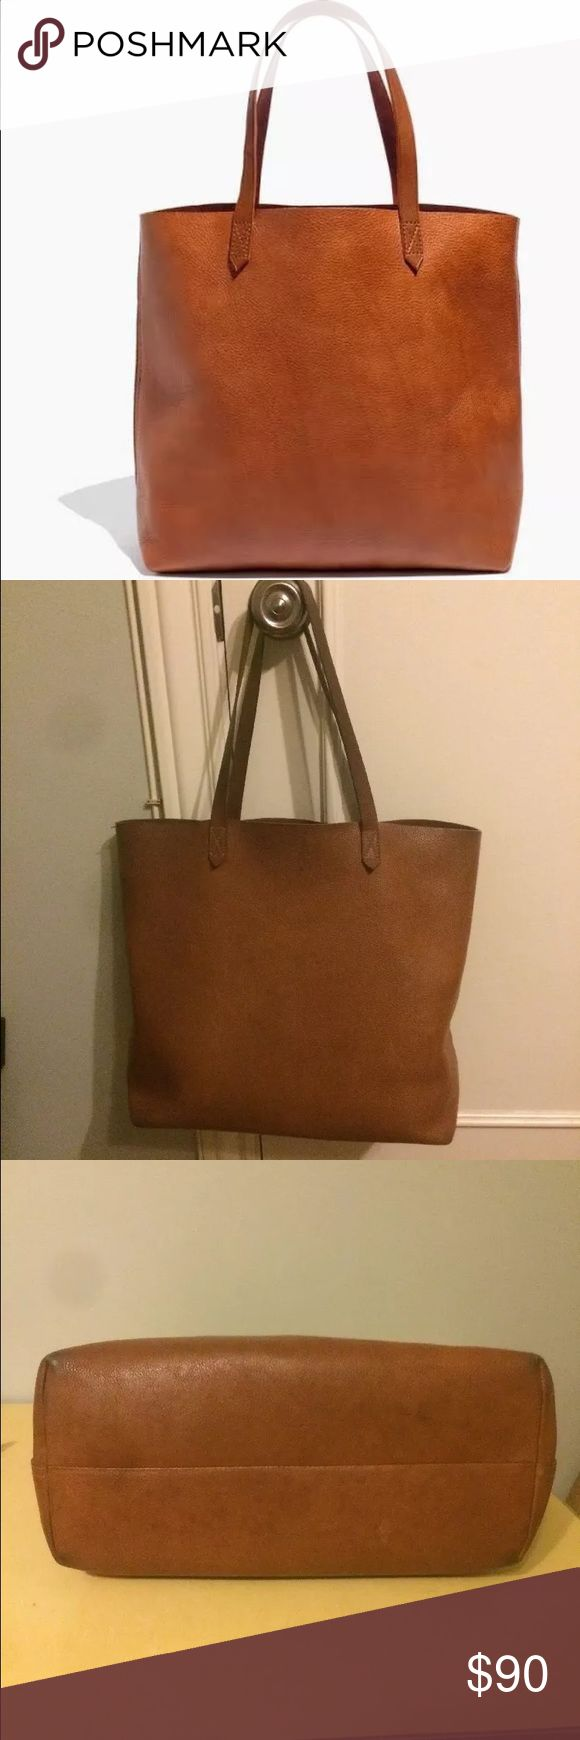 Madewell transport tote in English saddle This is a used Madewell Transport Tote. See photos for wear. Still works and looks great. These bags retails for over $160. Message with questions and send me offers Thanks! Madewell Bags Totes